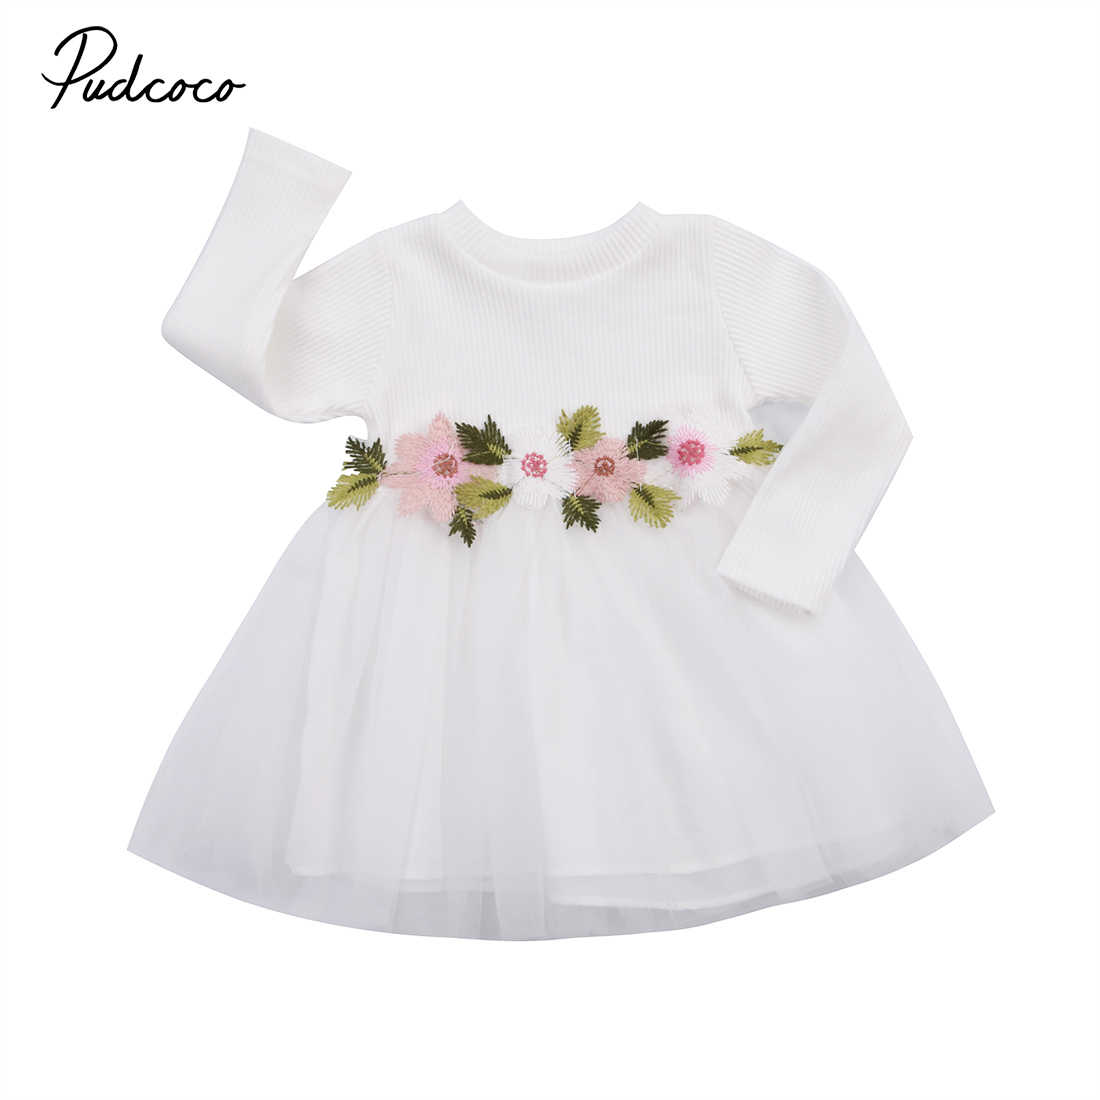 1db4c8cffb20 Fashion Toddler Baby Girls Flower Knit Dress Wedding Princess Prom Tulle  Tutu Dresses Fall Long Sleeve